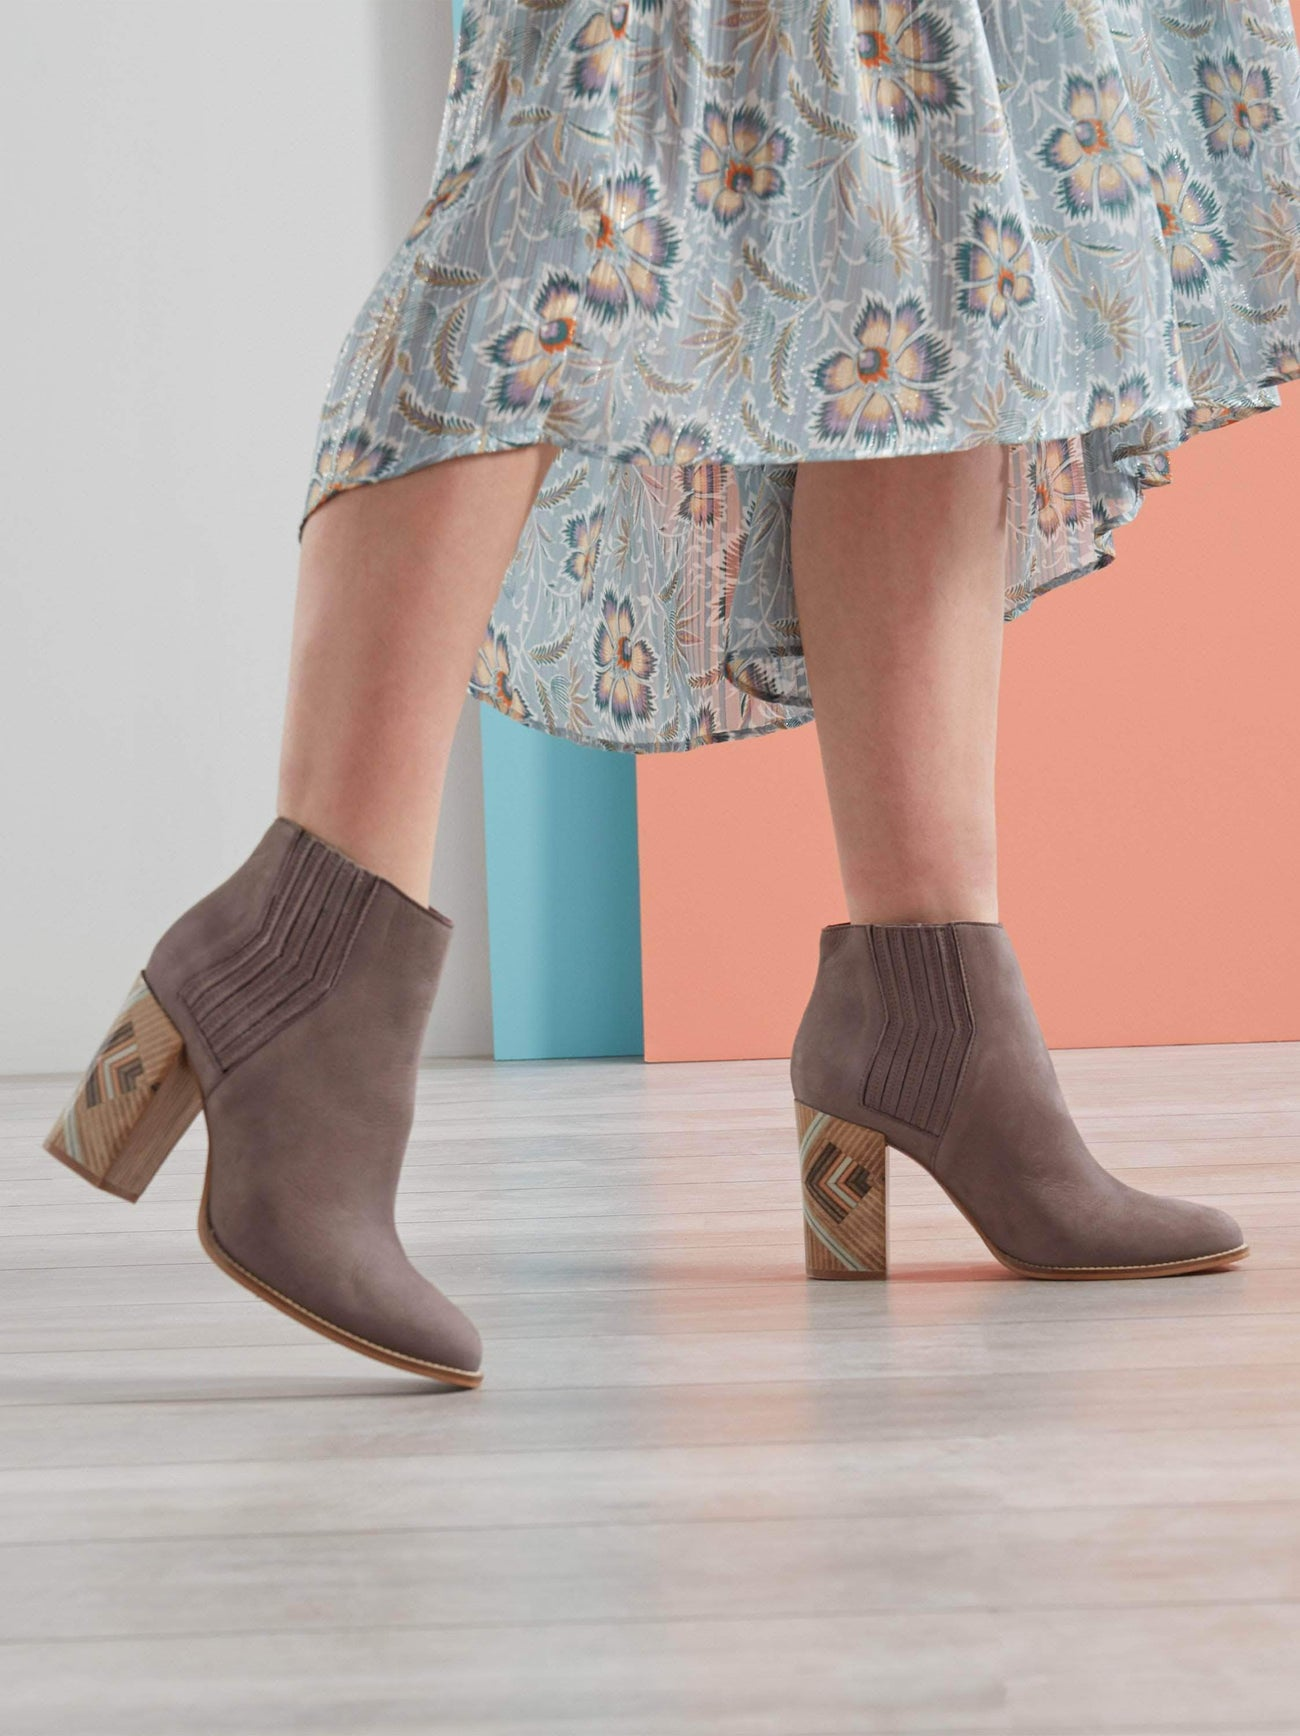 Paragon, a mid-height heeled ankle boot with a unique pattern.